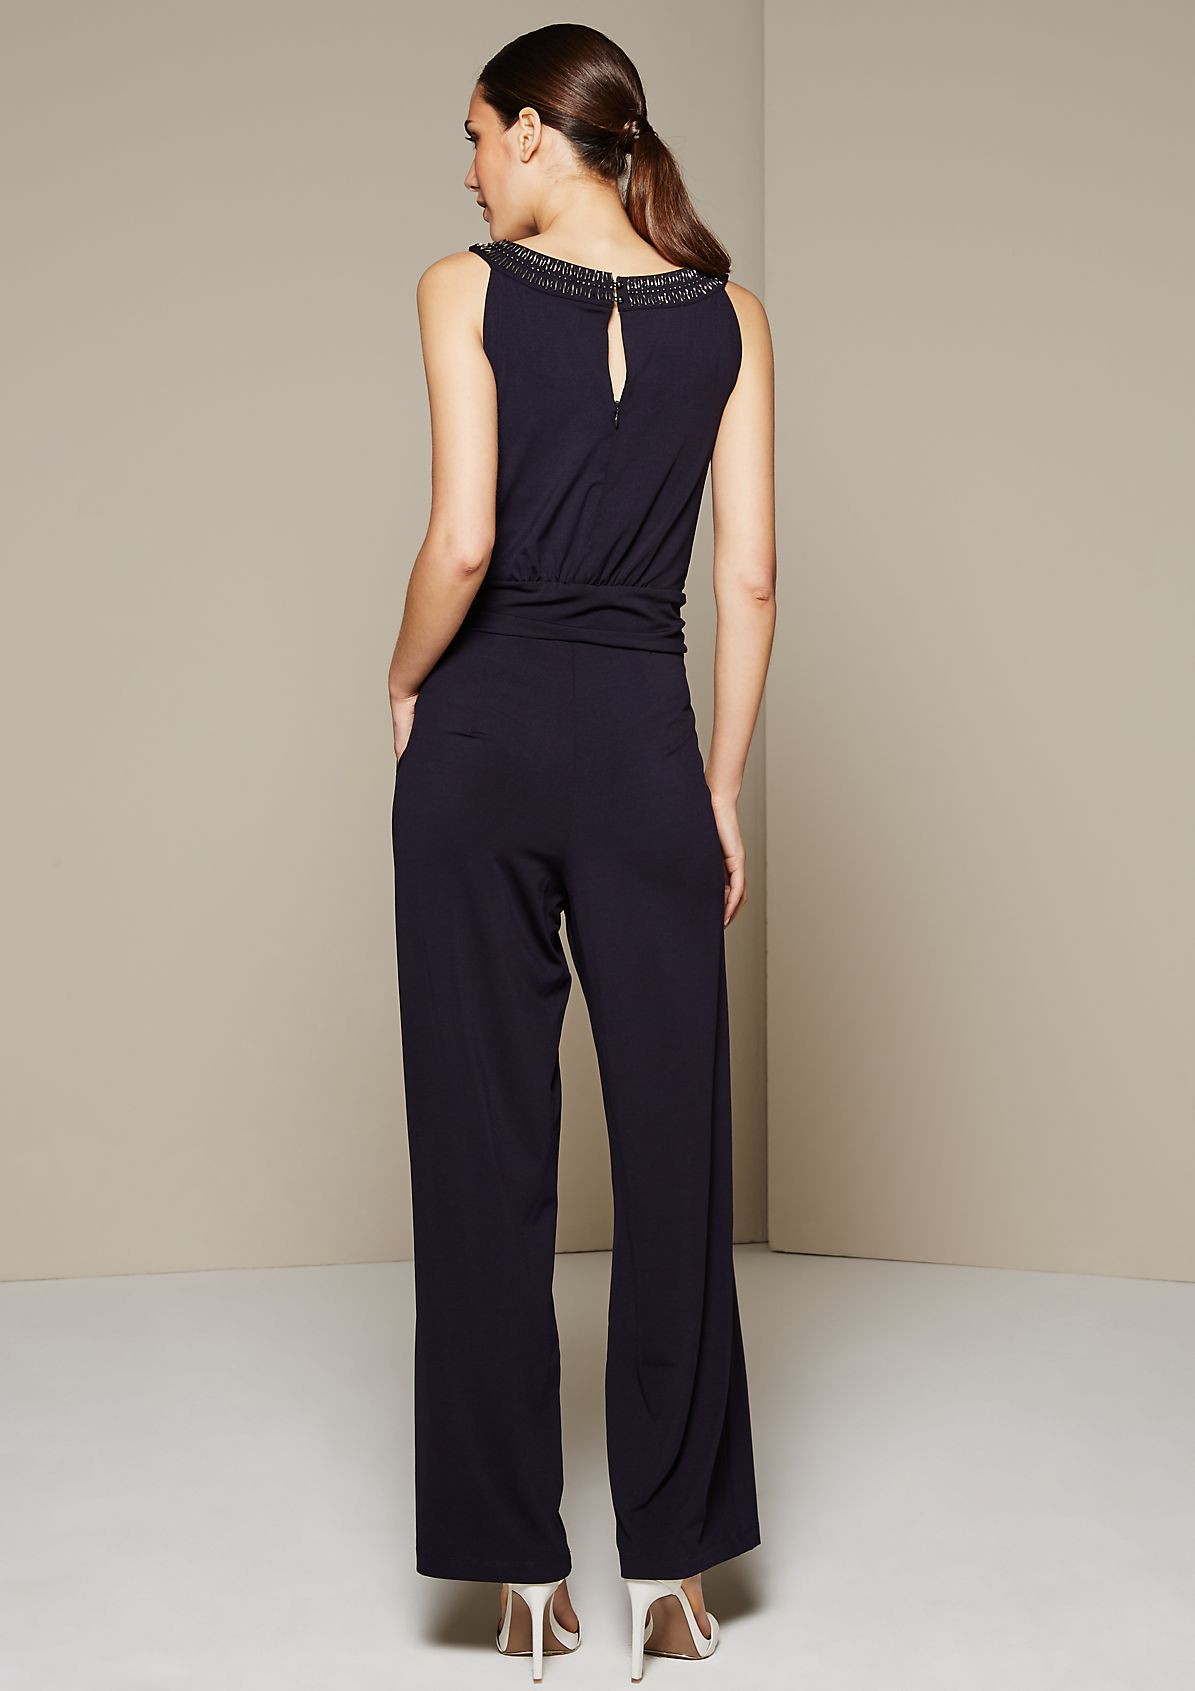 Lightweight summer jumpsuit with a glamorous, decorative trim from s.Oliver